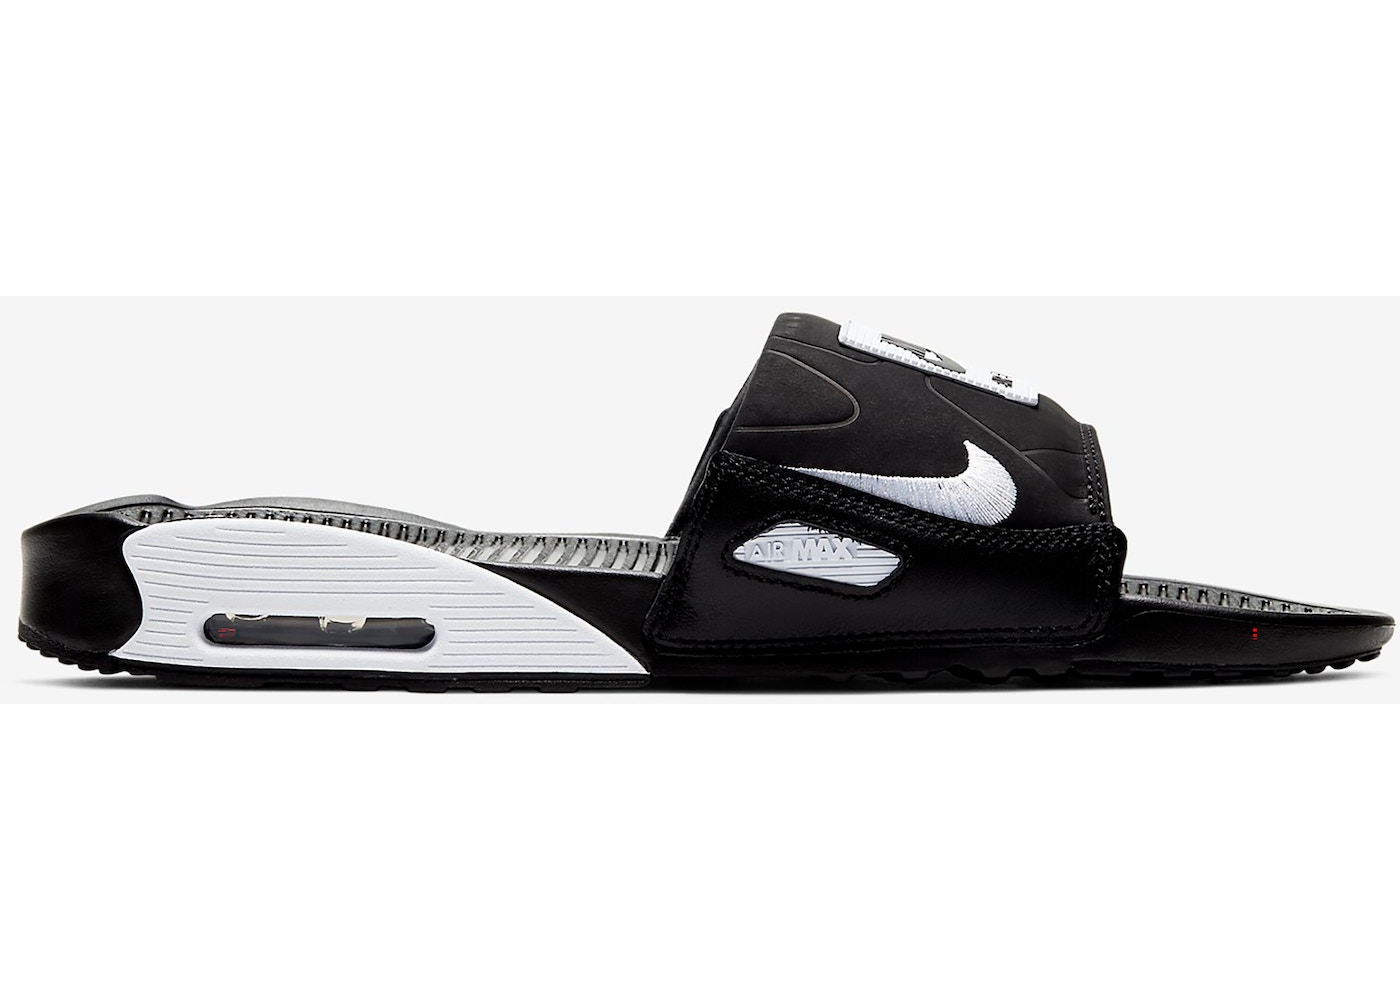 Nike Air Max 90 Slide Black White BQ4635 002 |